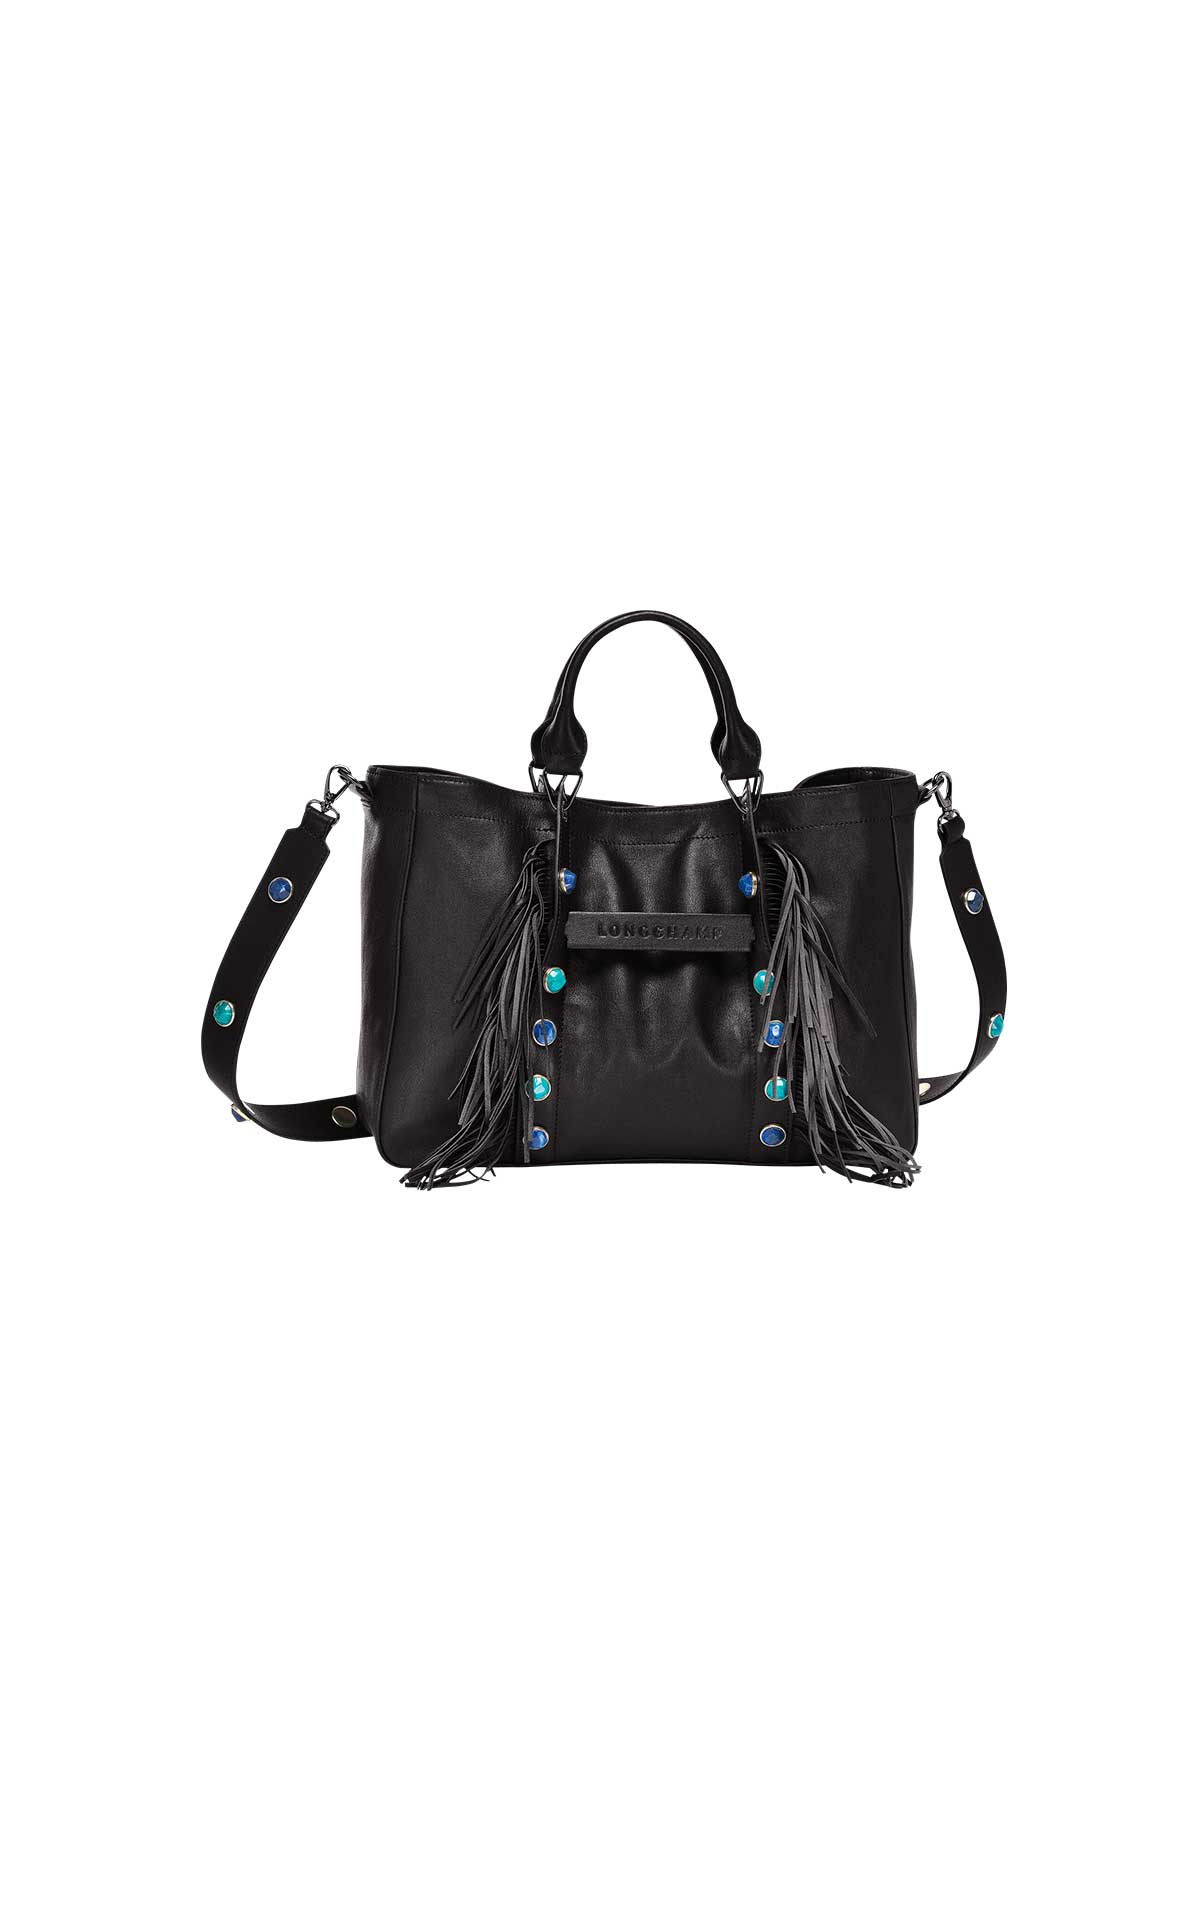 Black bag fringes Longchamp